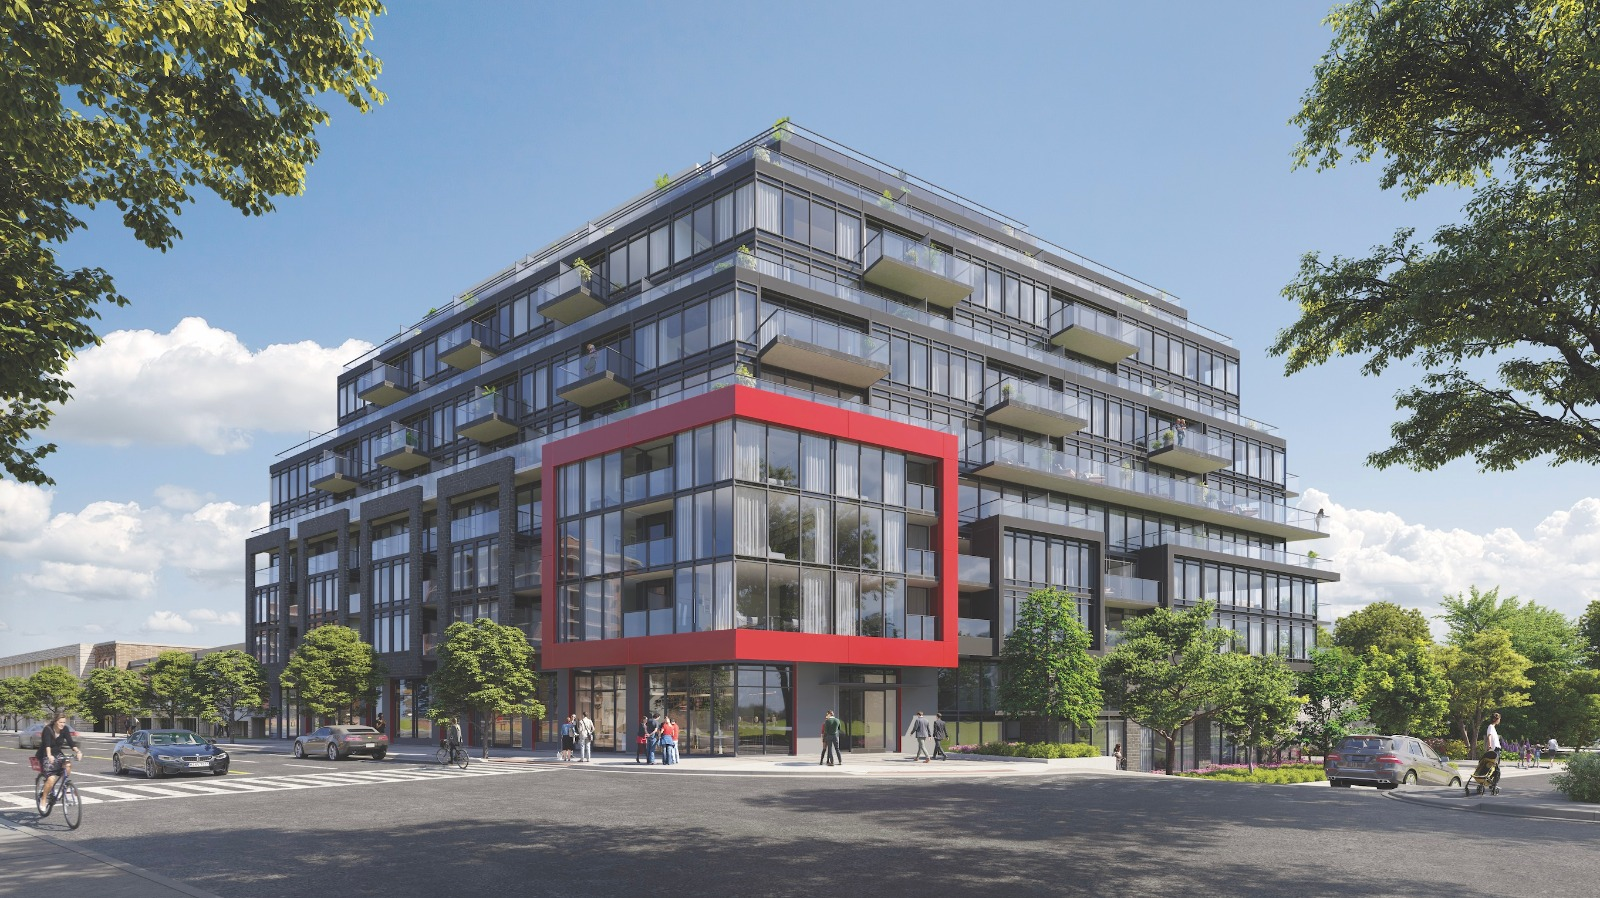 The Manderley Condos Rendering